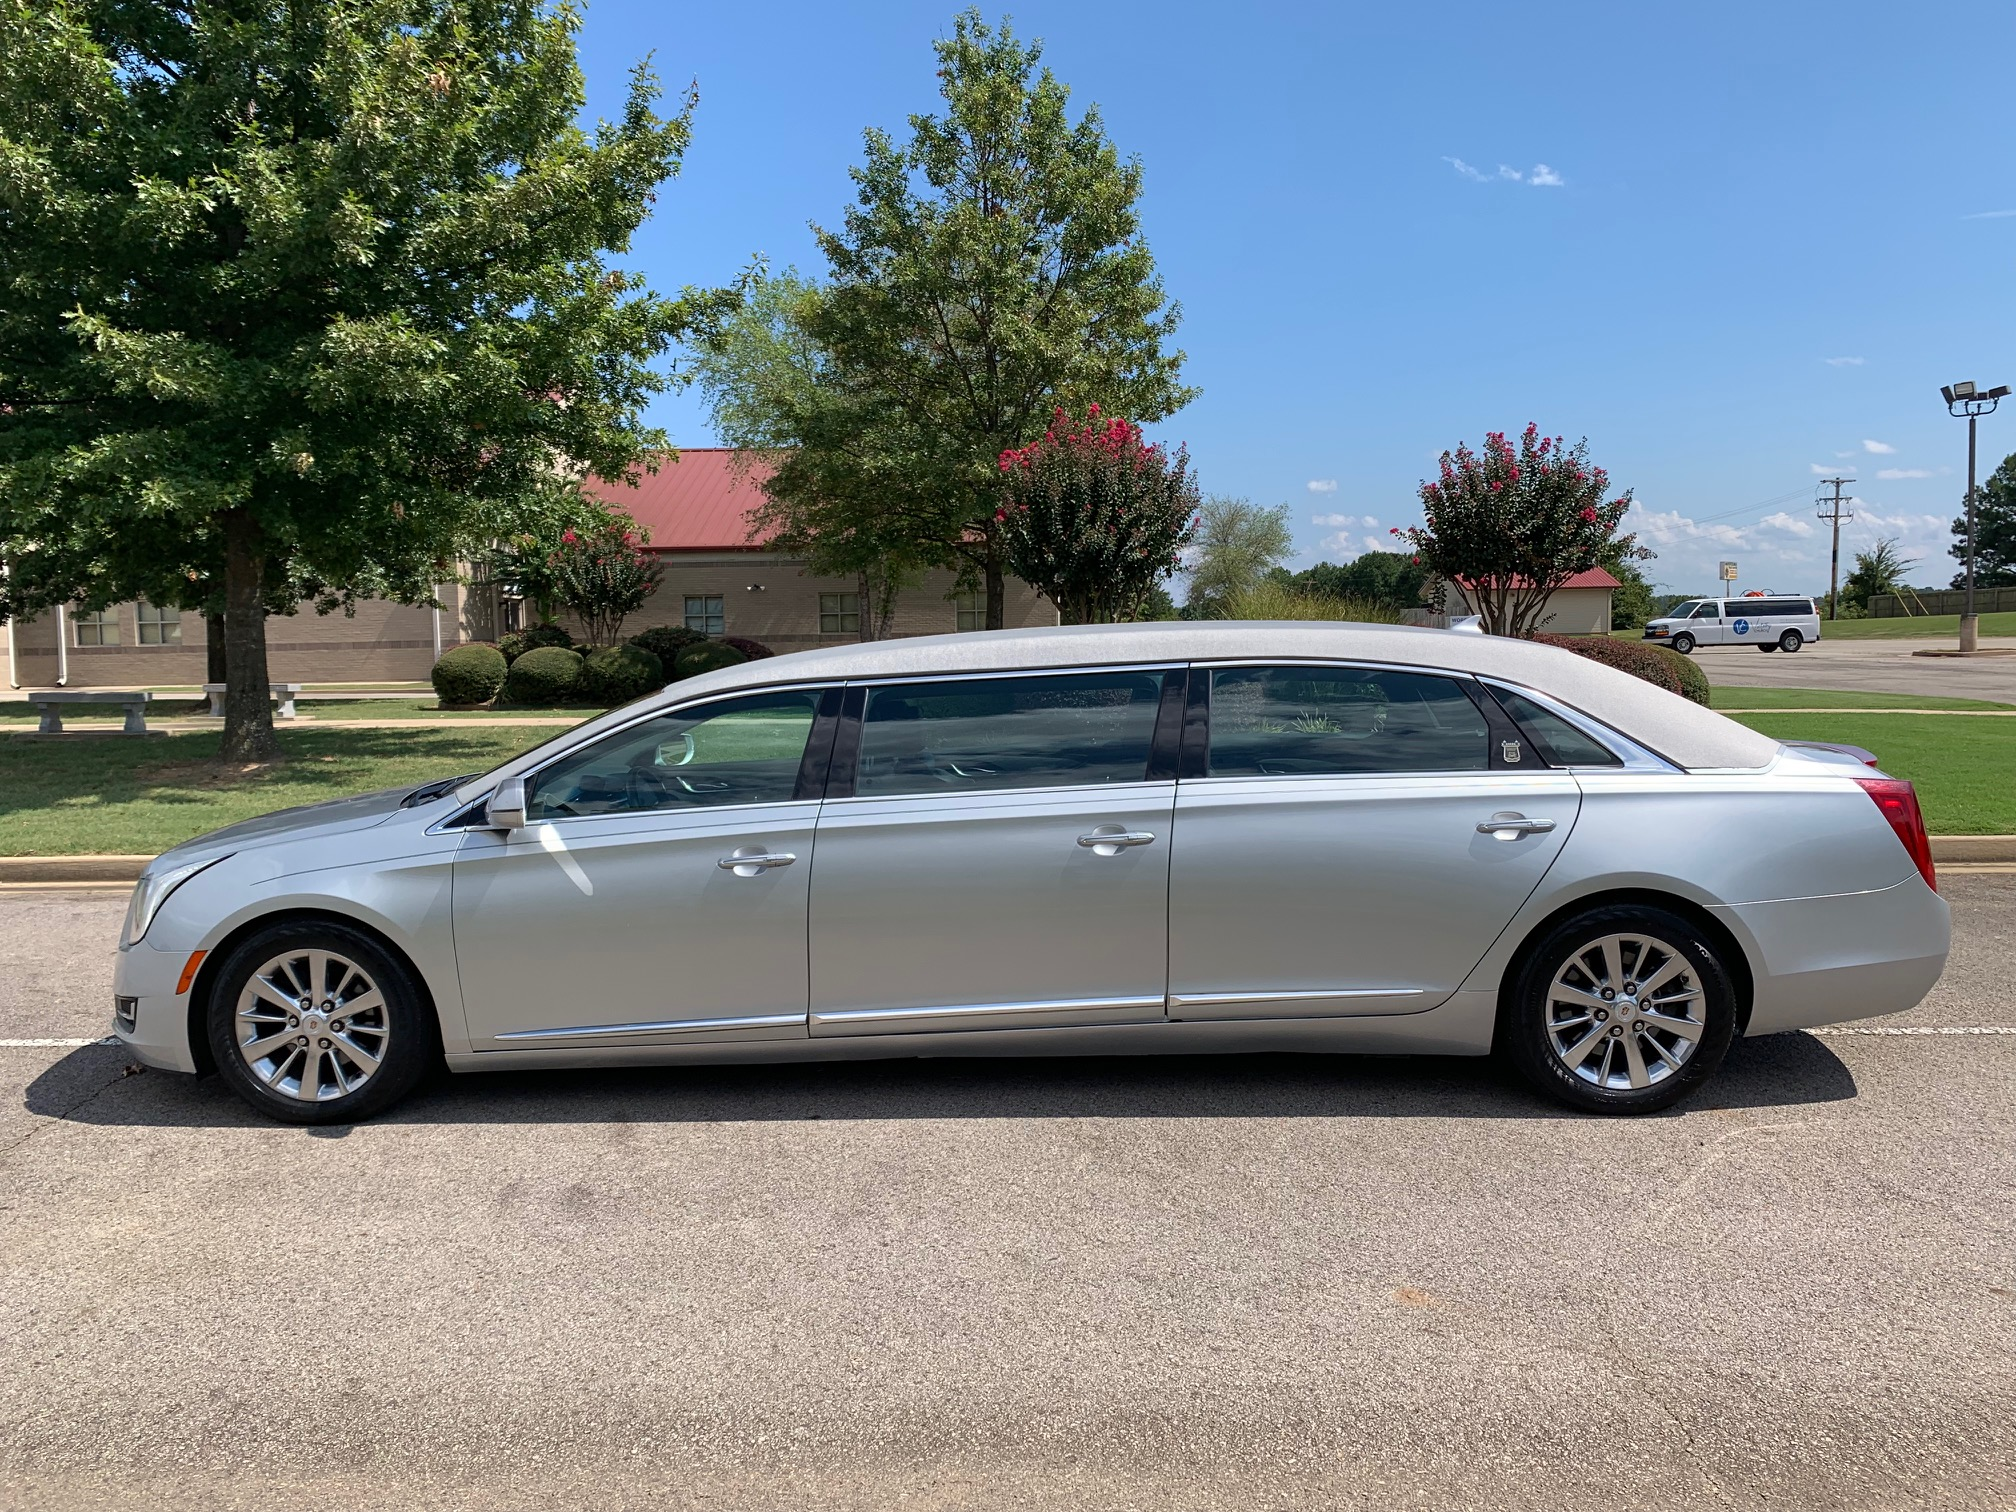 2014 Cadillac Armbruster Stageway Six Door Limo - Radiant Silver